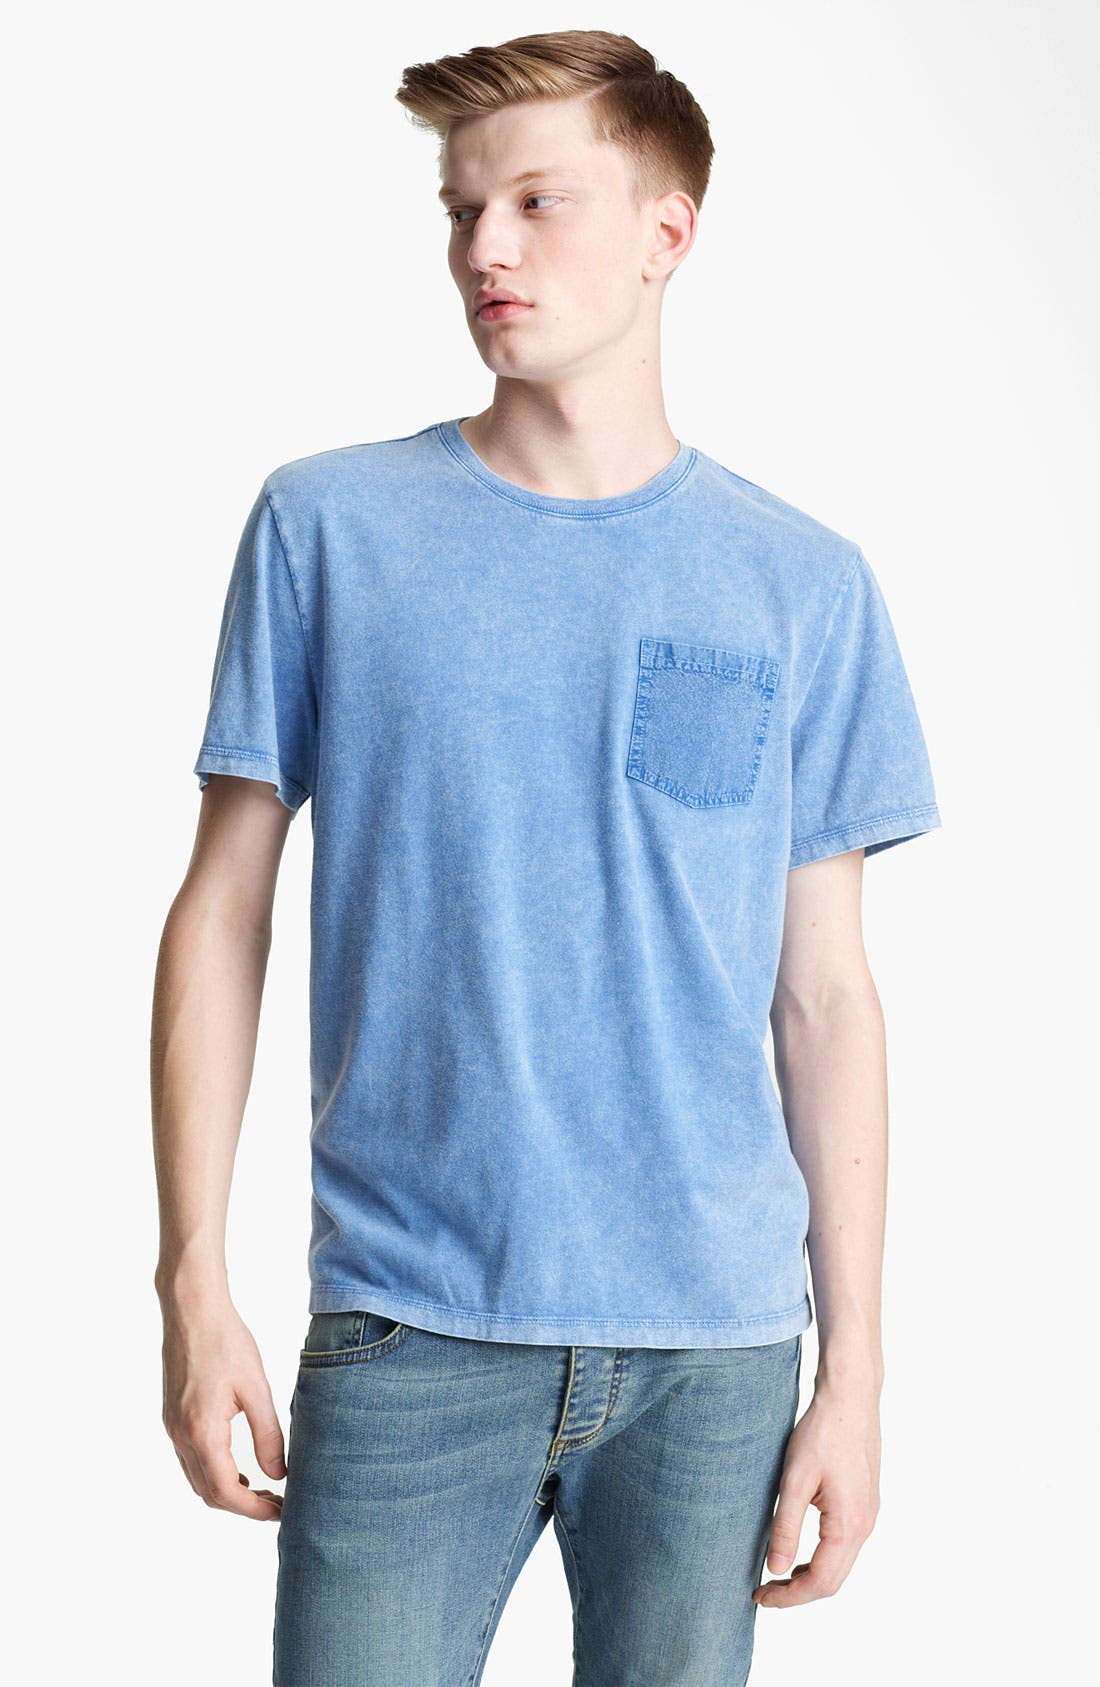 Alternate Image 1 Selected - Topman Washed Cotton Pocket T-Shirt